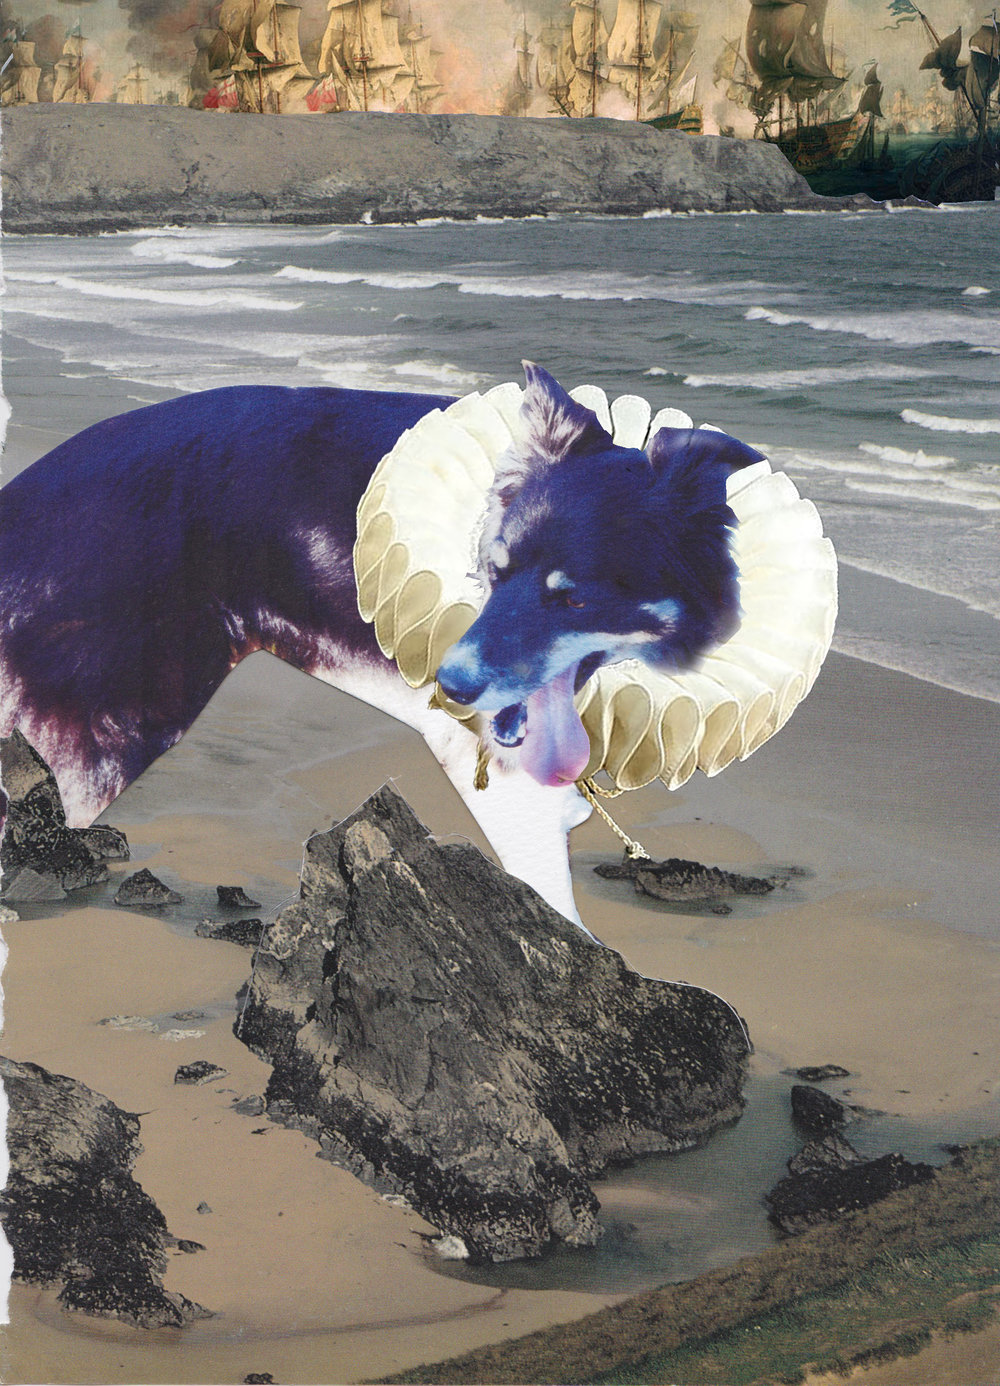 dog-ruff-collage-granite-glitter-beach-cornwall-art-ships-naval-rocks-animal